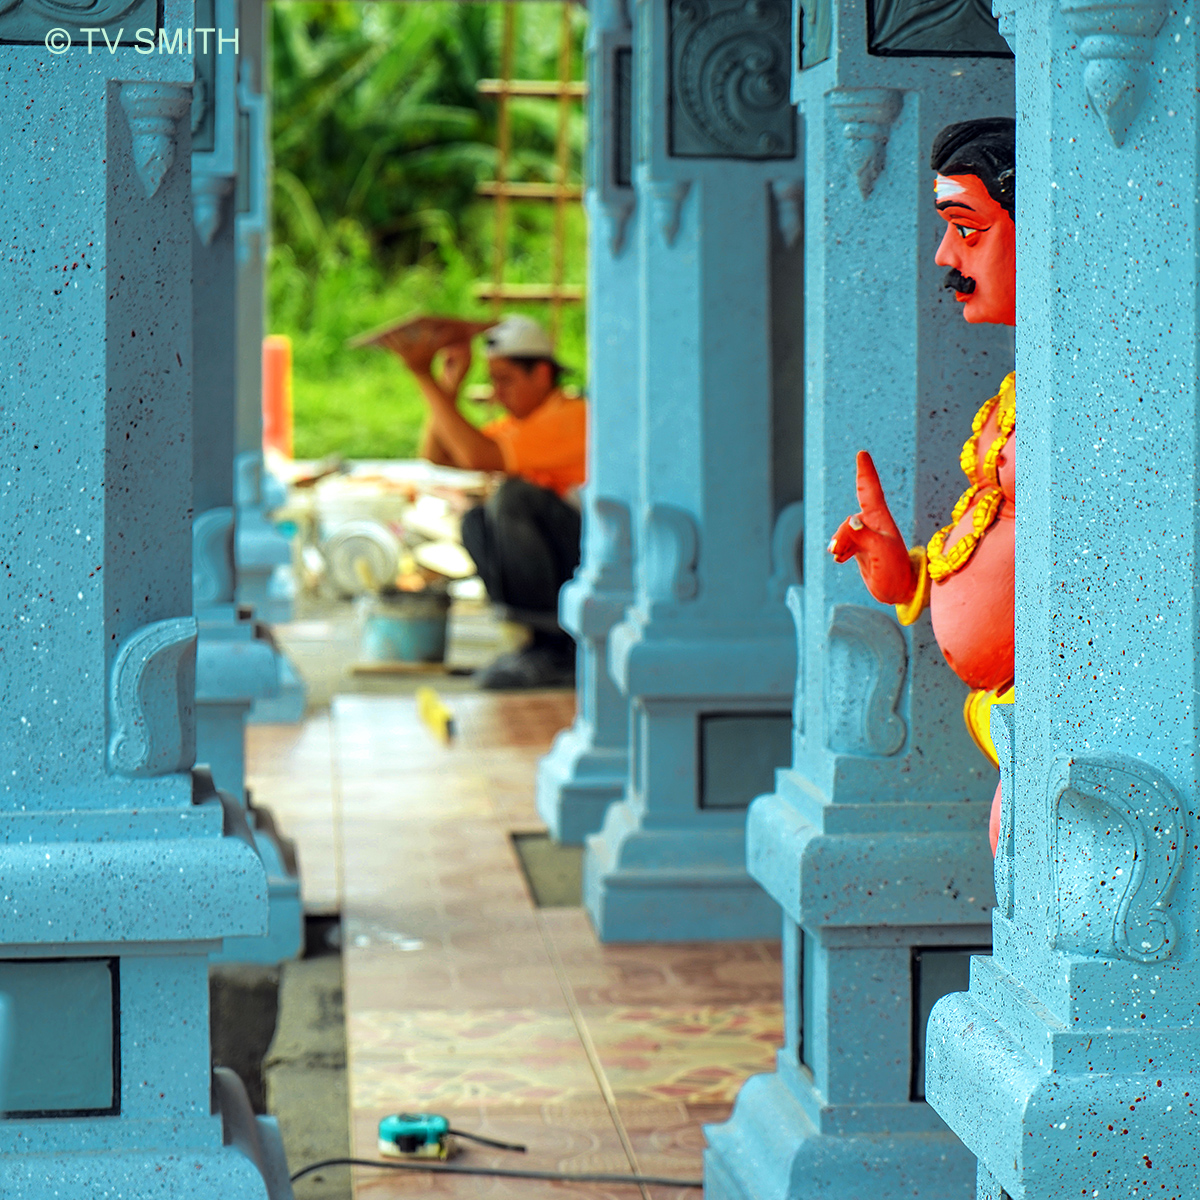 Hindu Temple Statue Supervising A Chinese Tile Installer